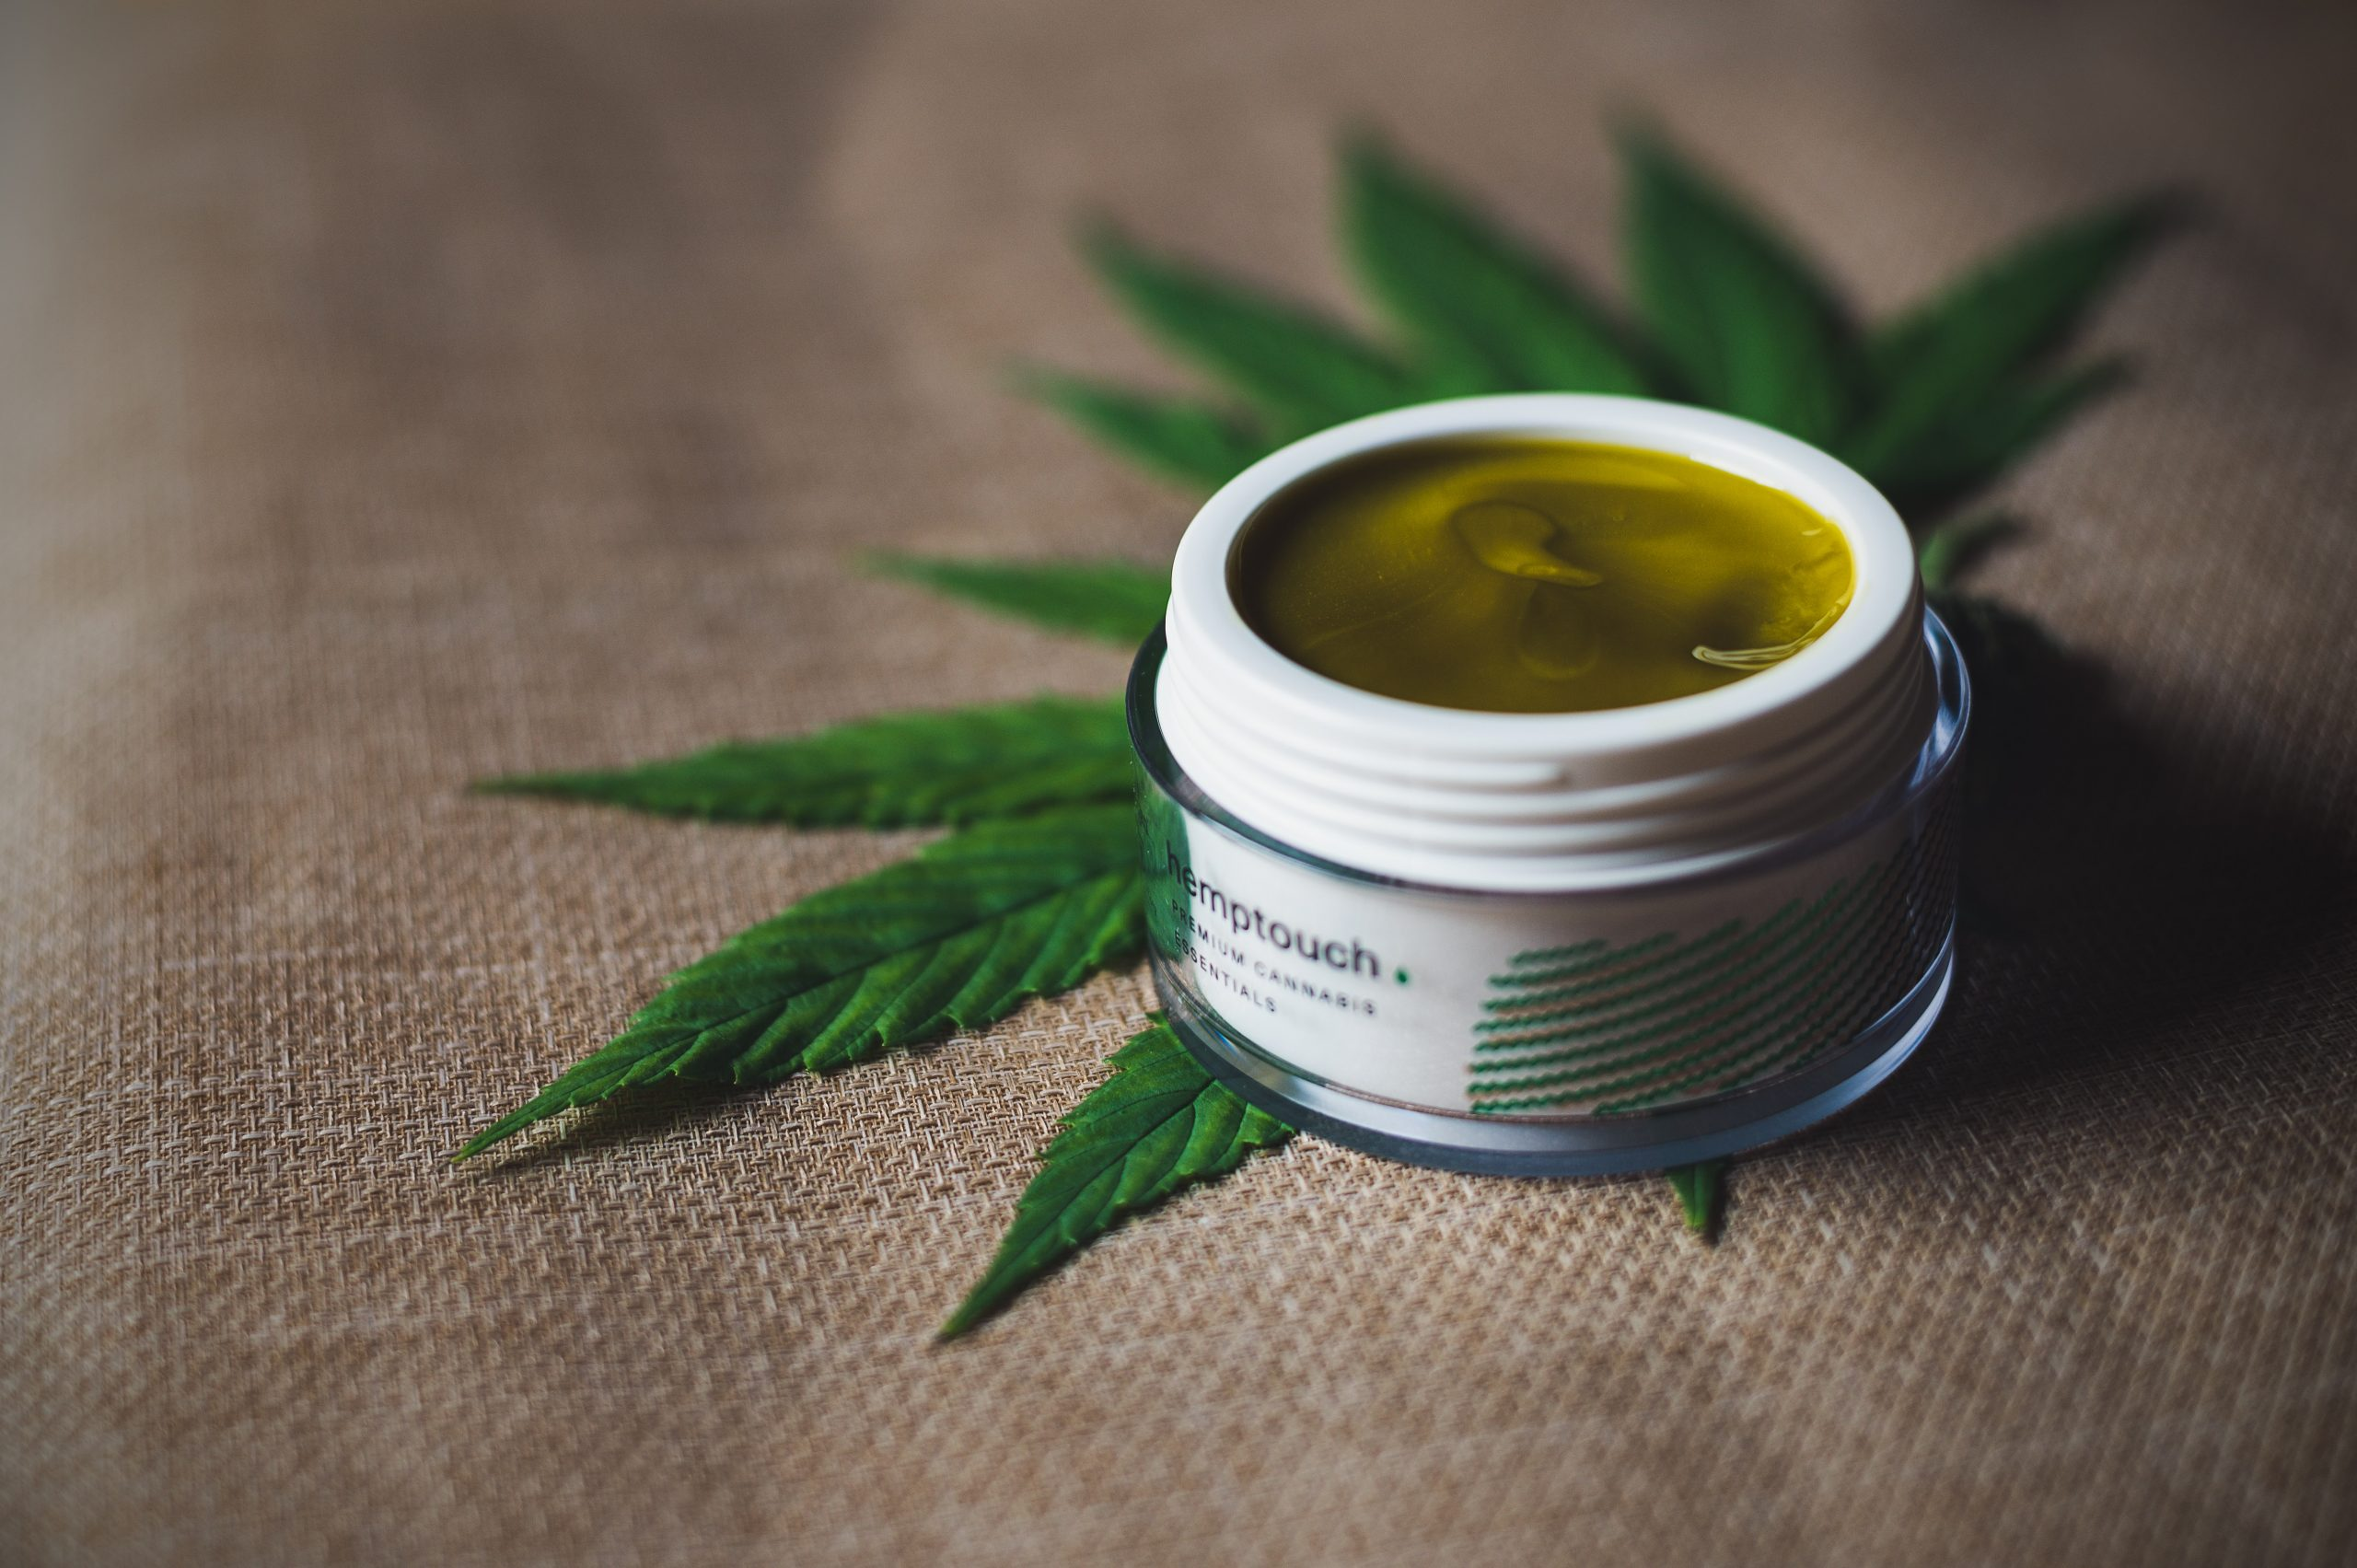 cbd oil cp retail point of sale counterpoint